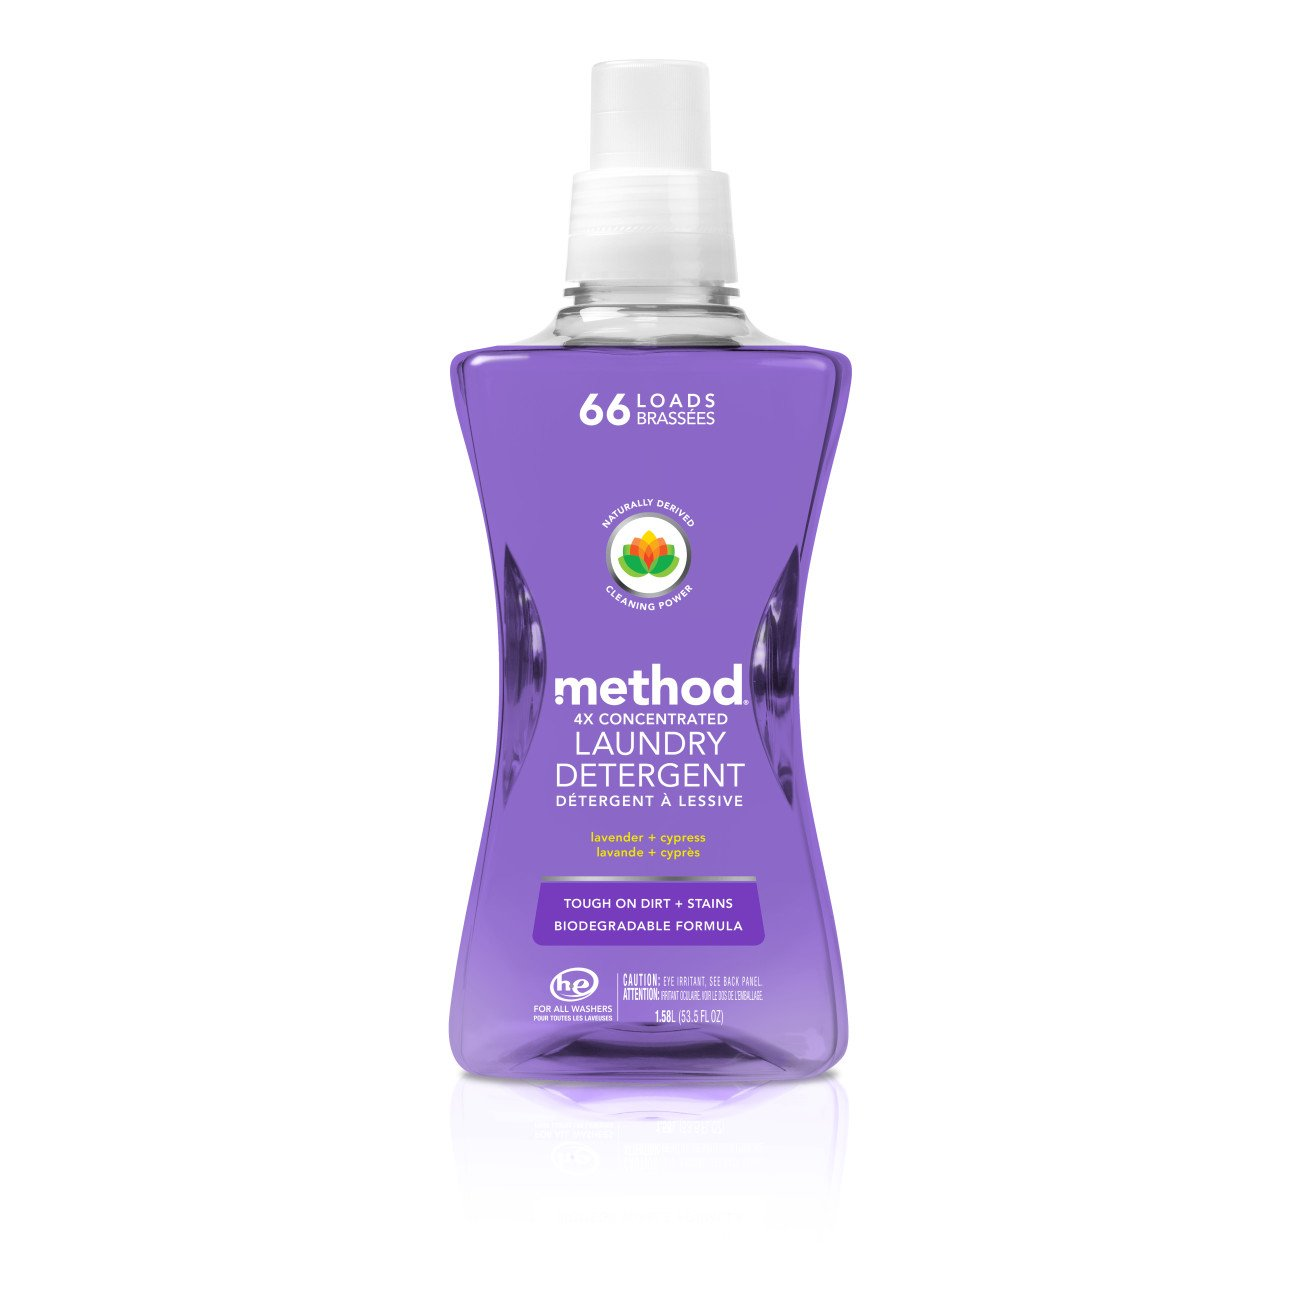 Method Concentrated Laundry Detergent, Lavender + CypressScent,66 Loads, 53.5 Ounce